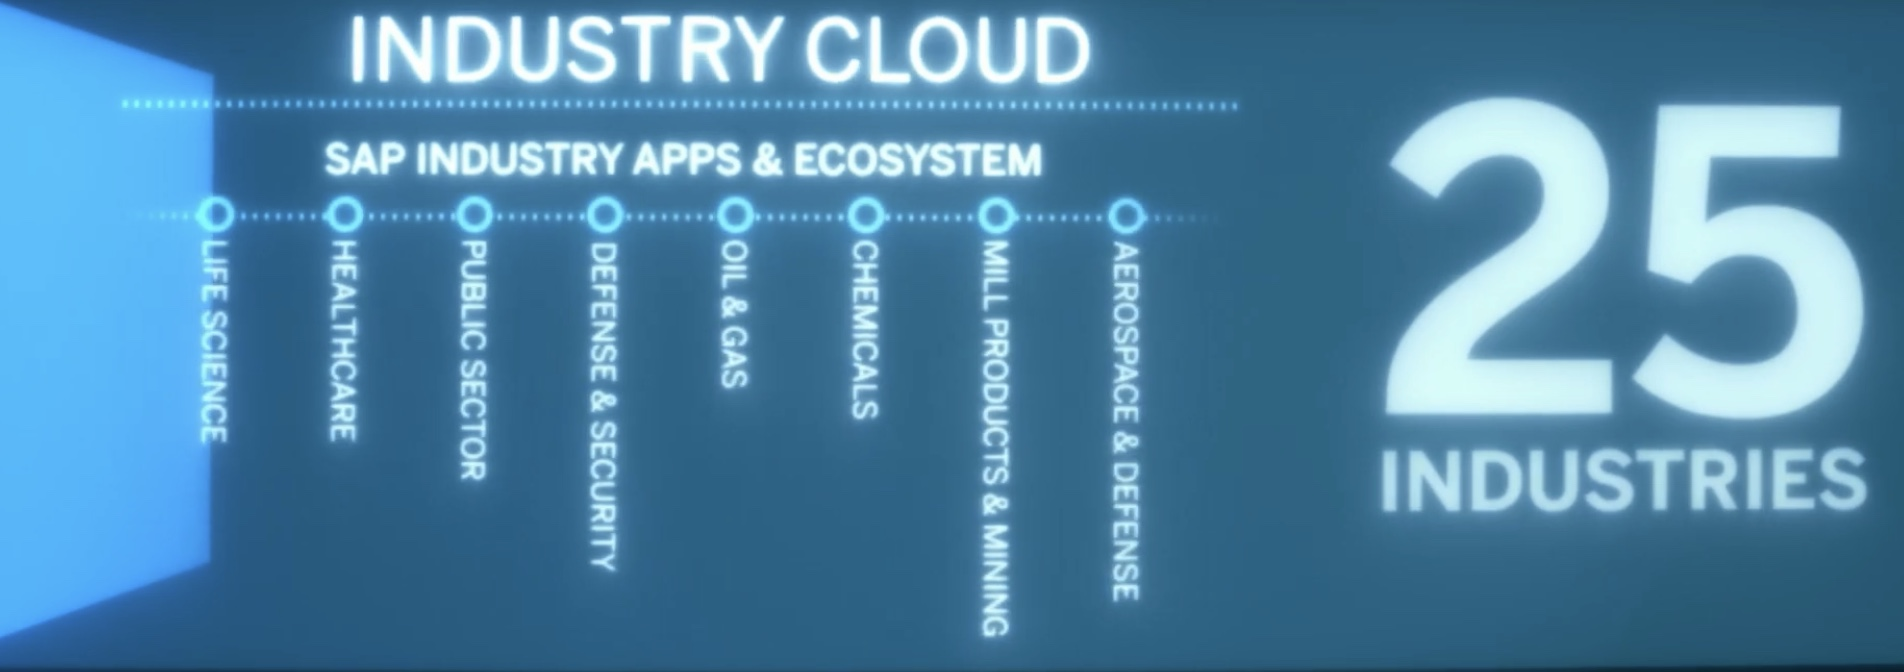 Industry%20Cloud%3A%20Cloud%20Native%20Industry%20Applications